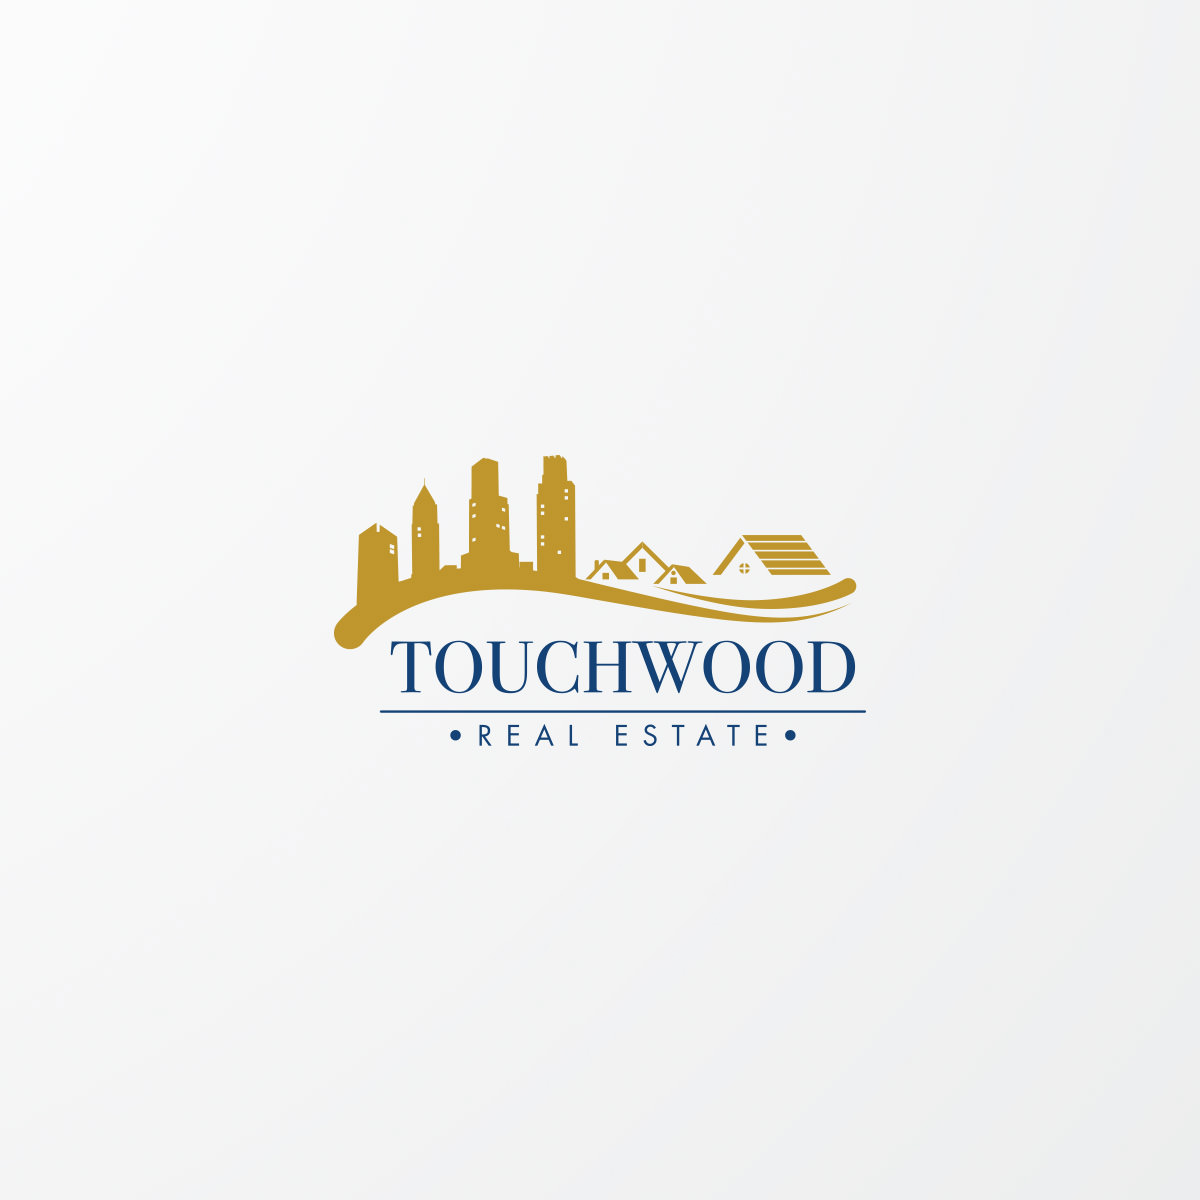 Touchwood (Real Estate)